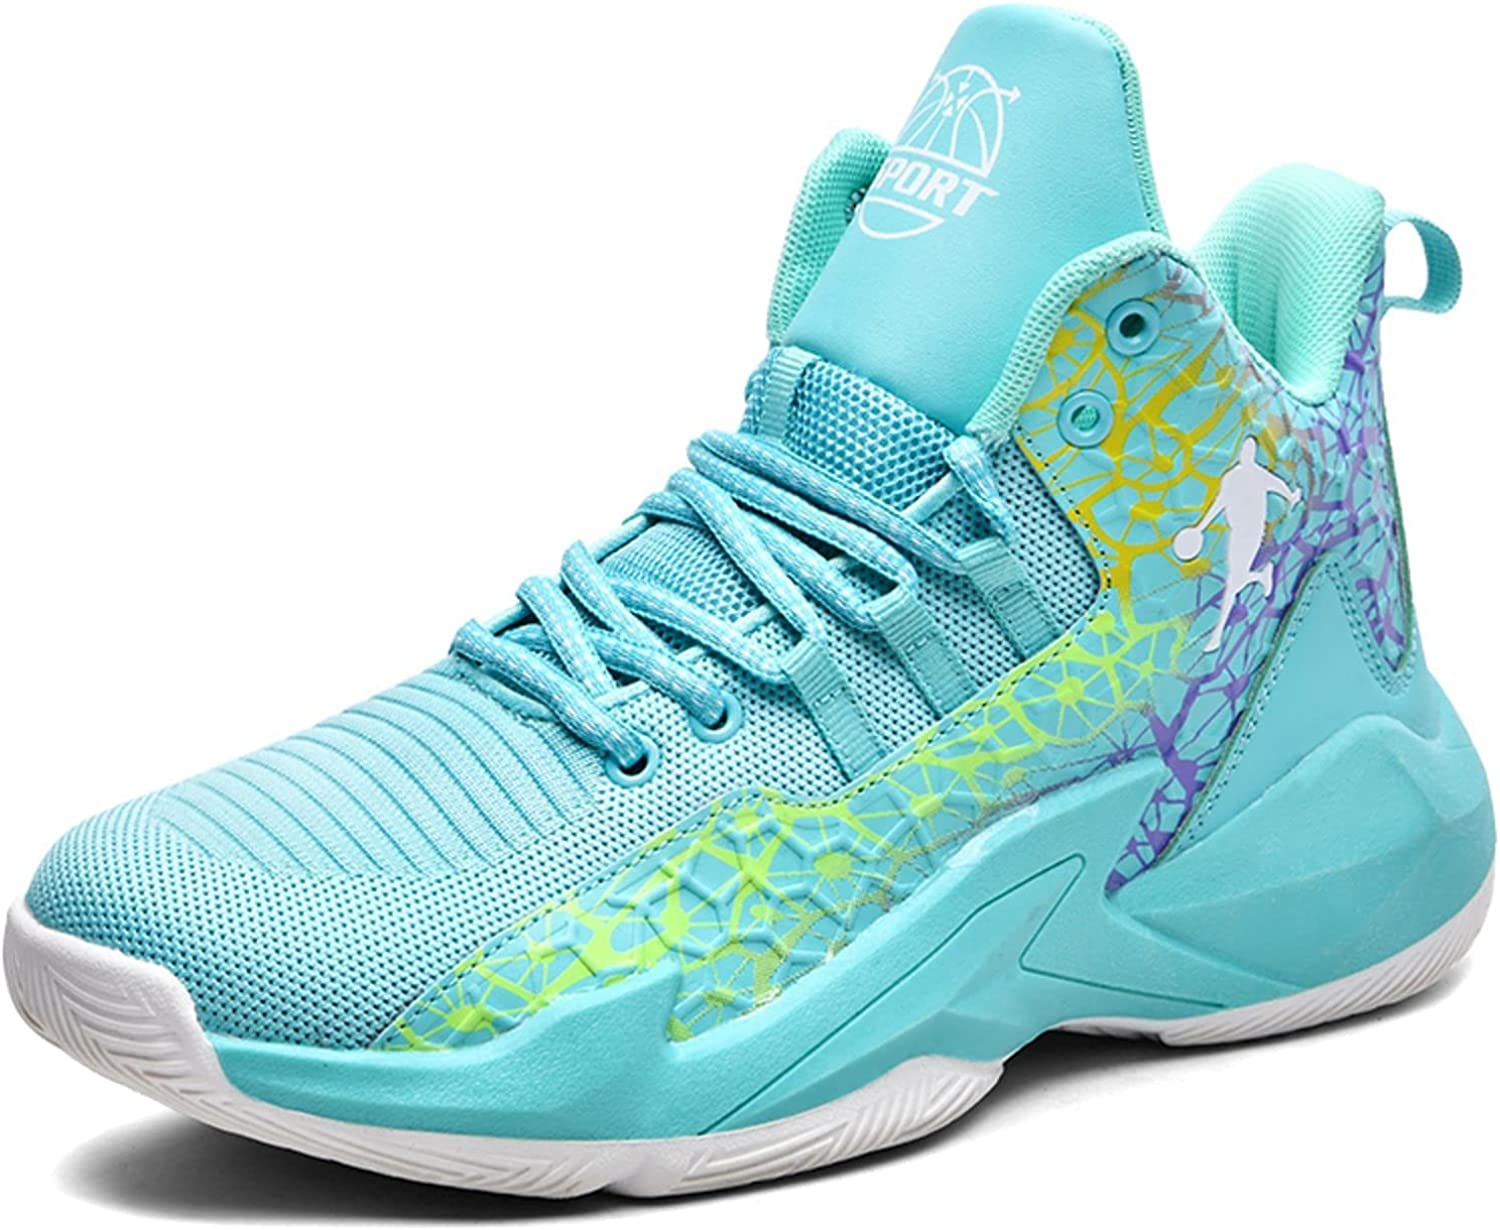 Ucilxi New Flying Woven Fashion Basketball Shoes